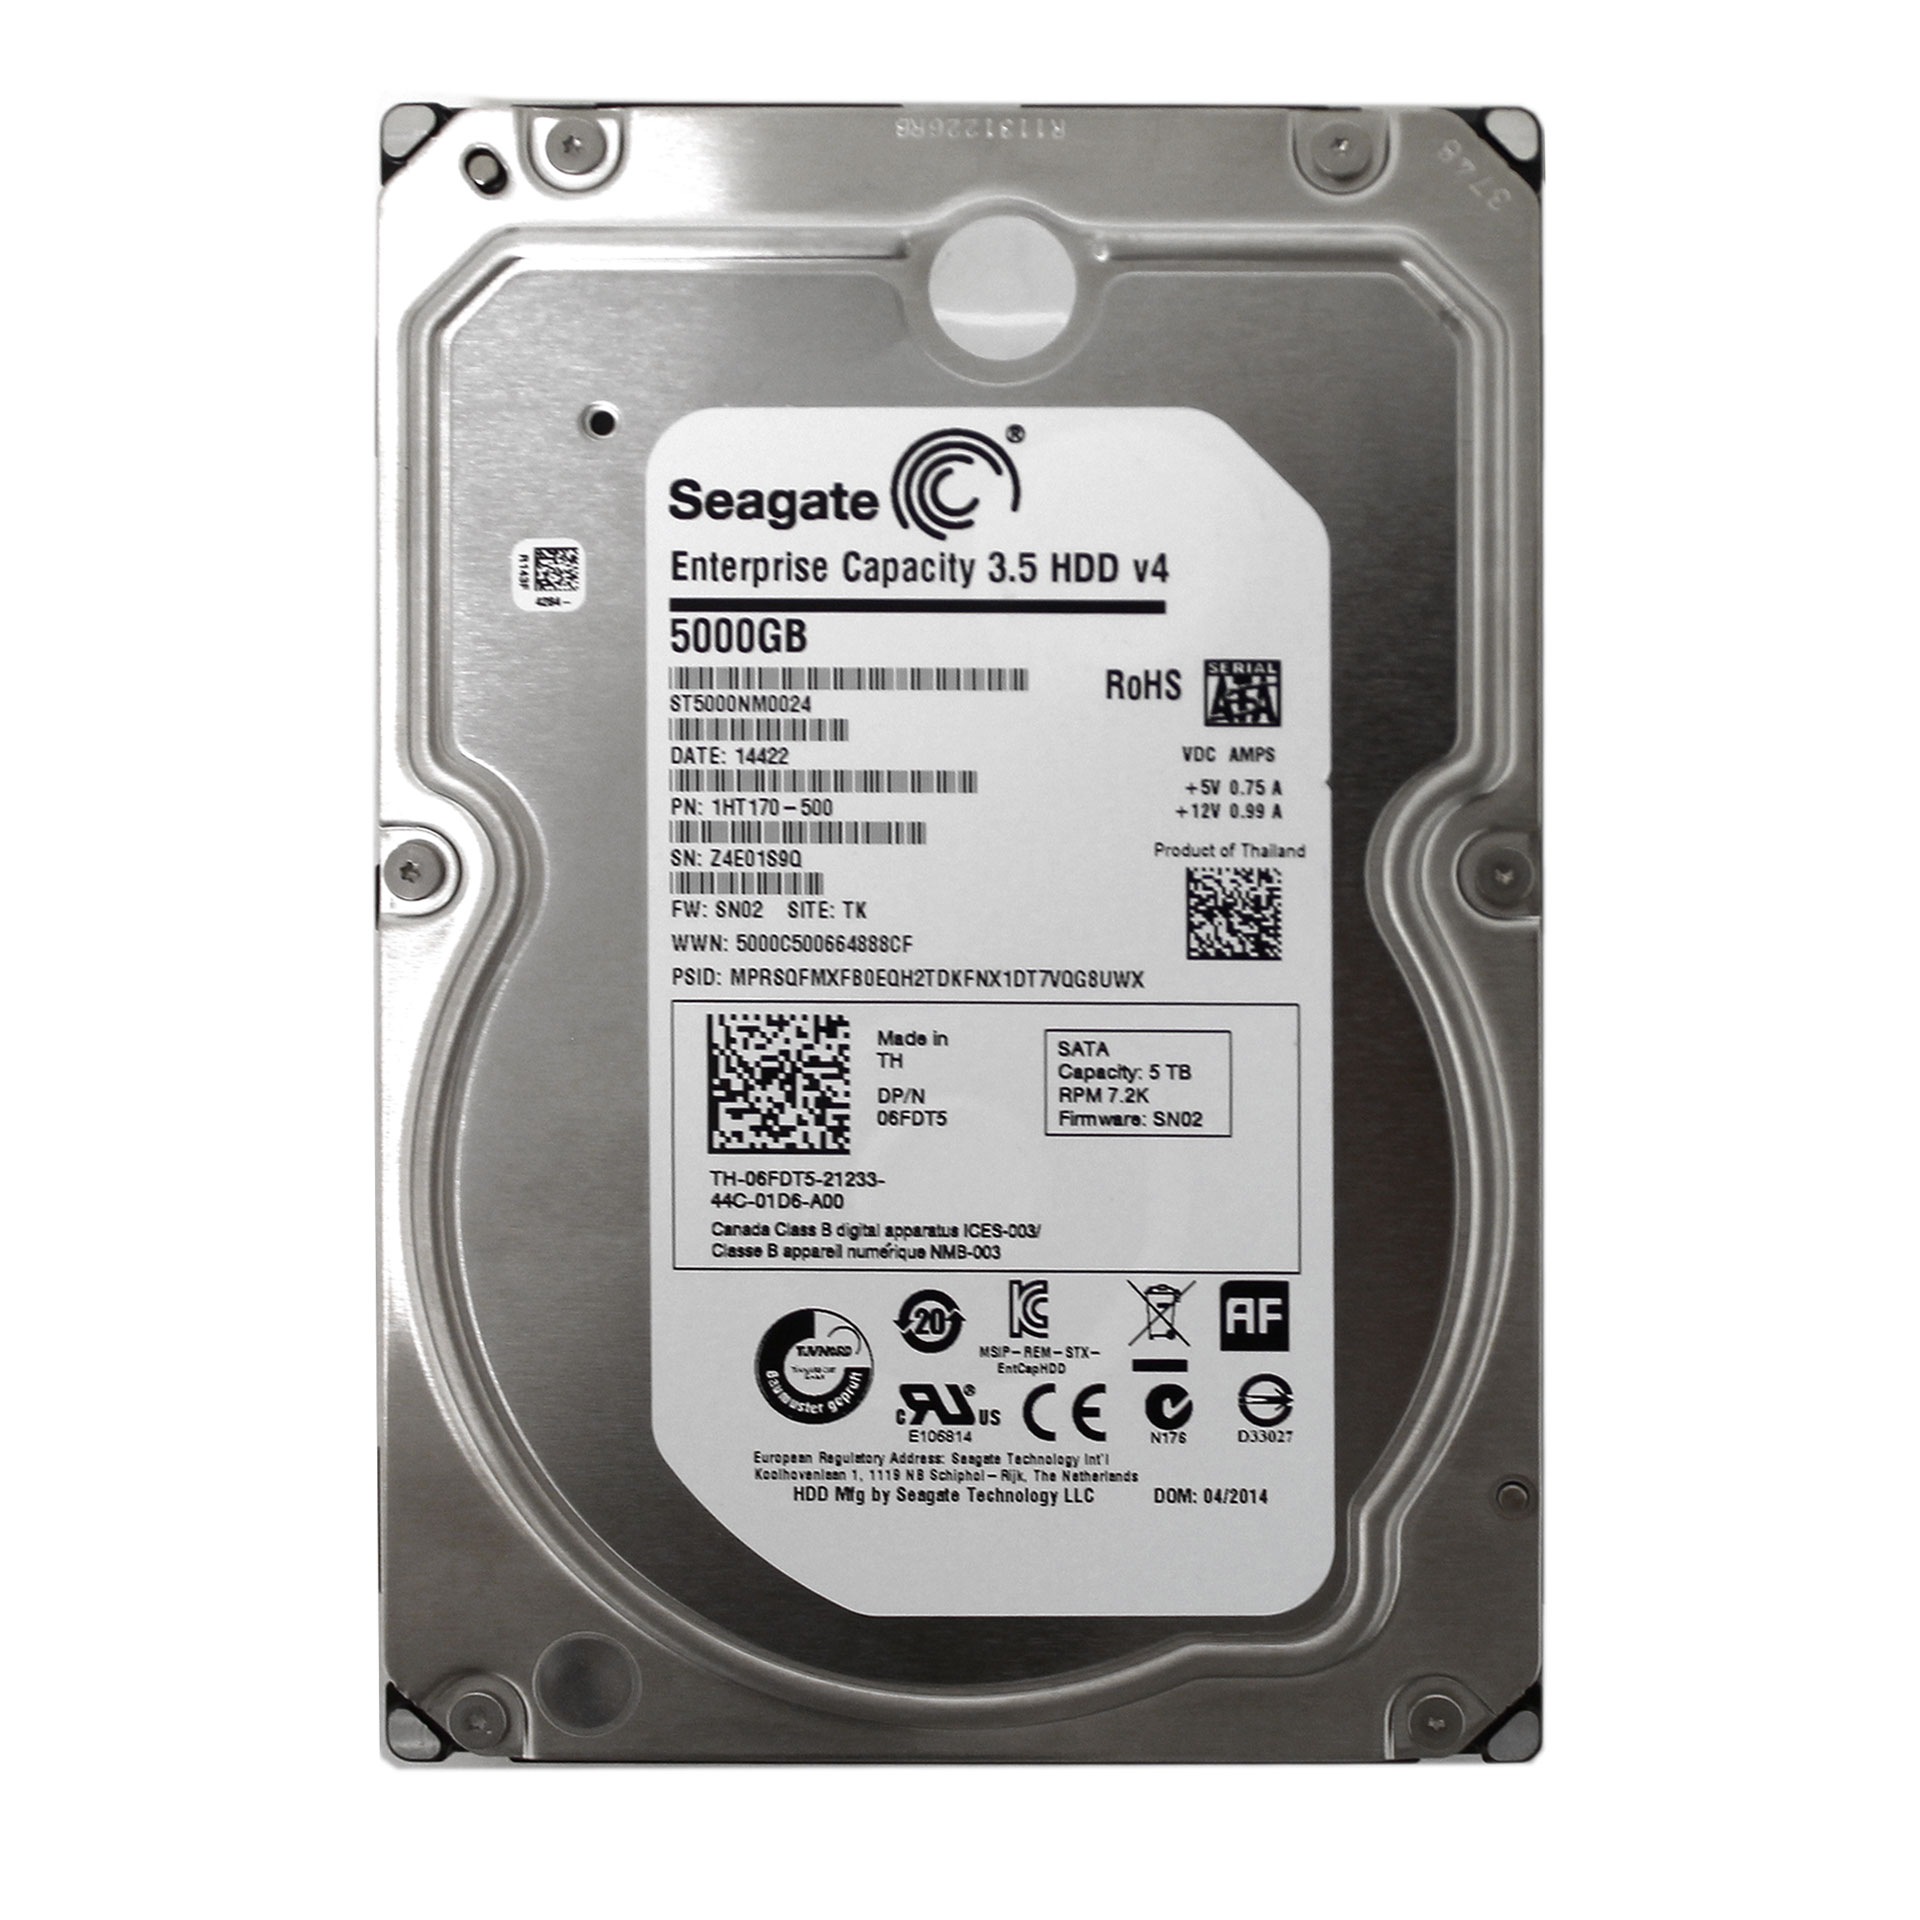 "Seagate 5TB ST5000NM0024 7200RPM 128MB SATA 3.5"" 1HT170 HDD"